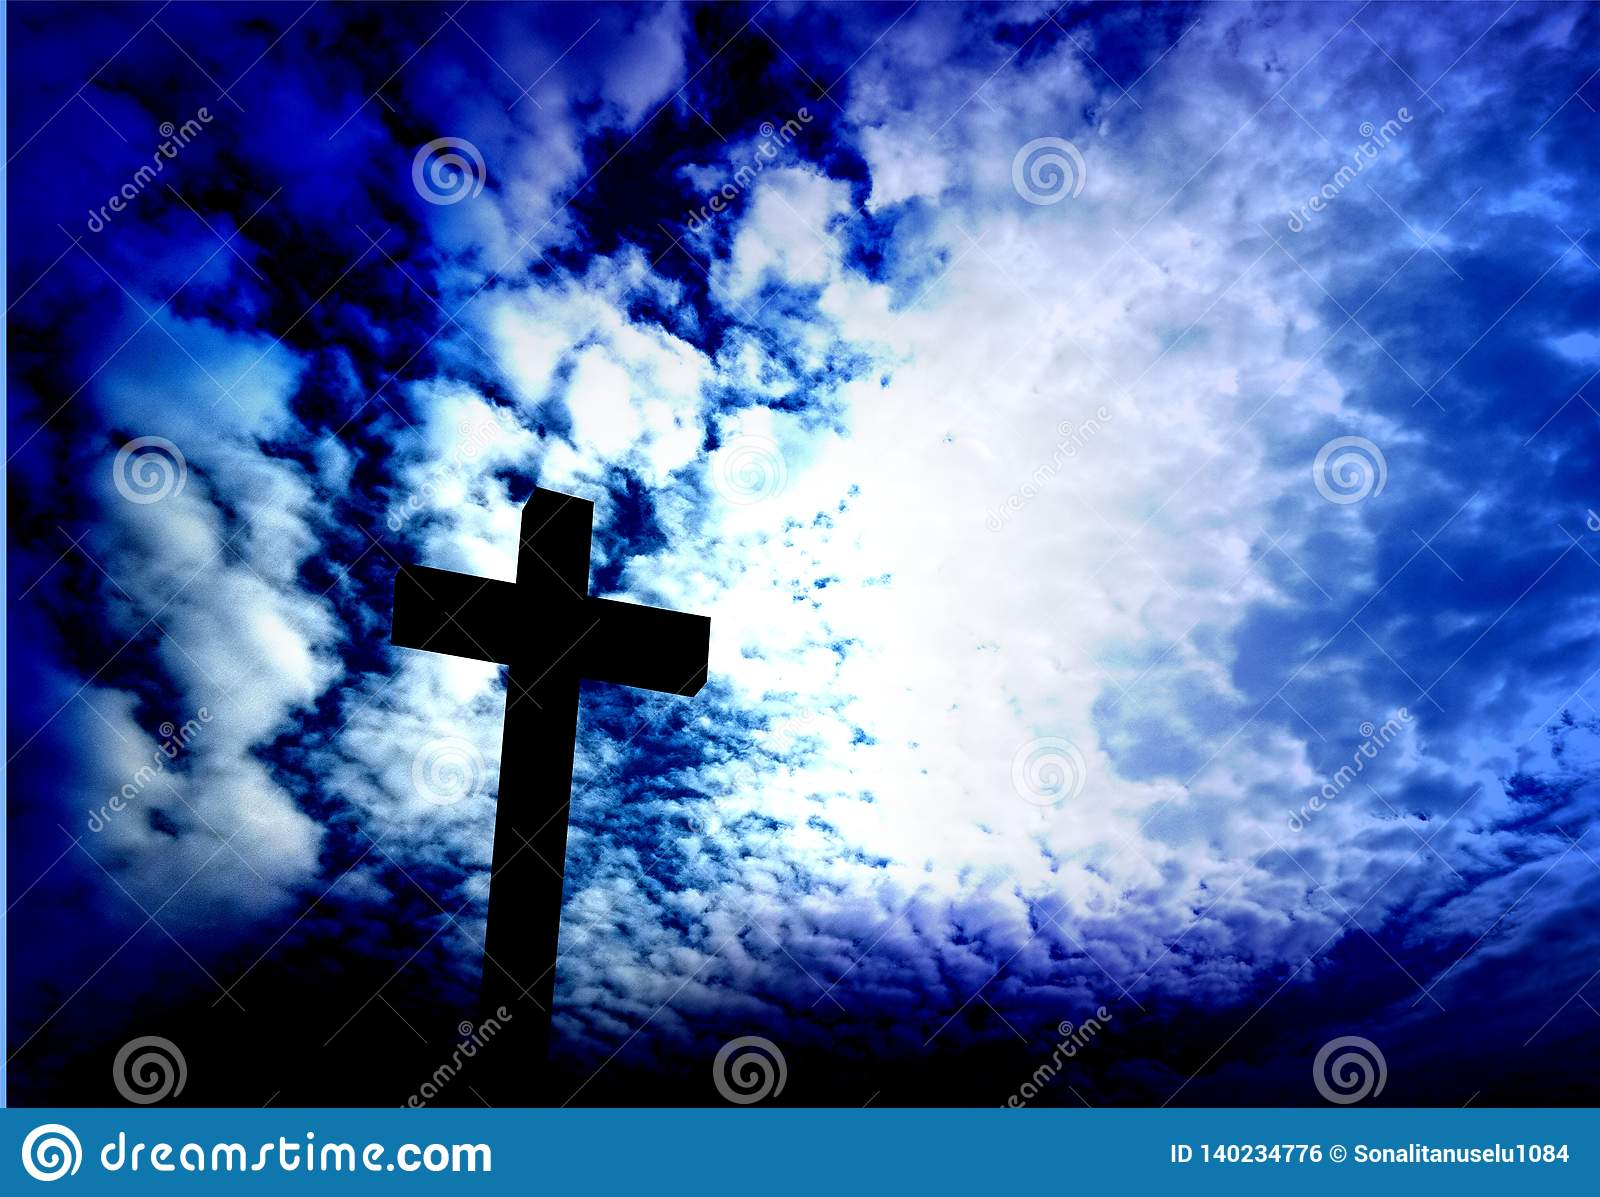 Jesus Christ Cross Background Wallpaper Stock Photo Image Of Belief Faith 140234776